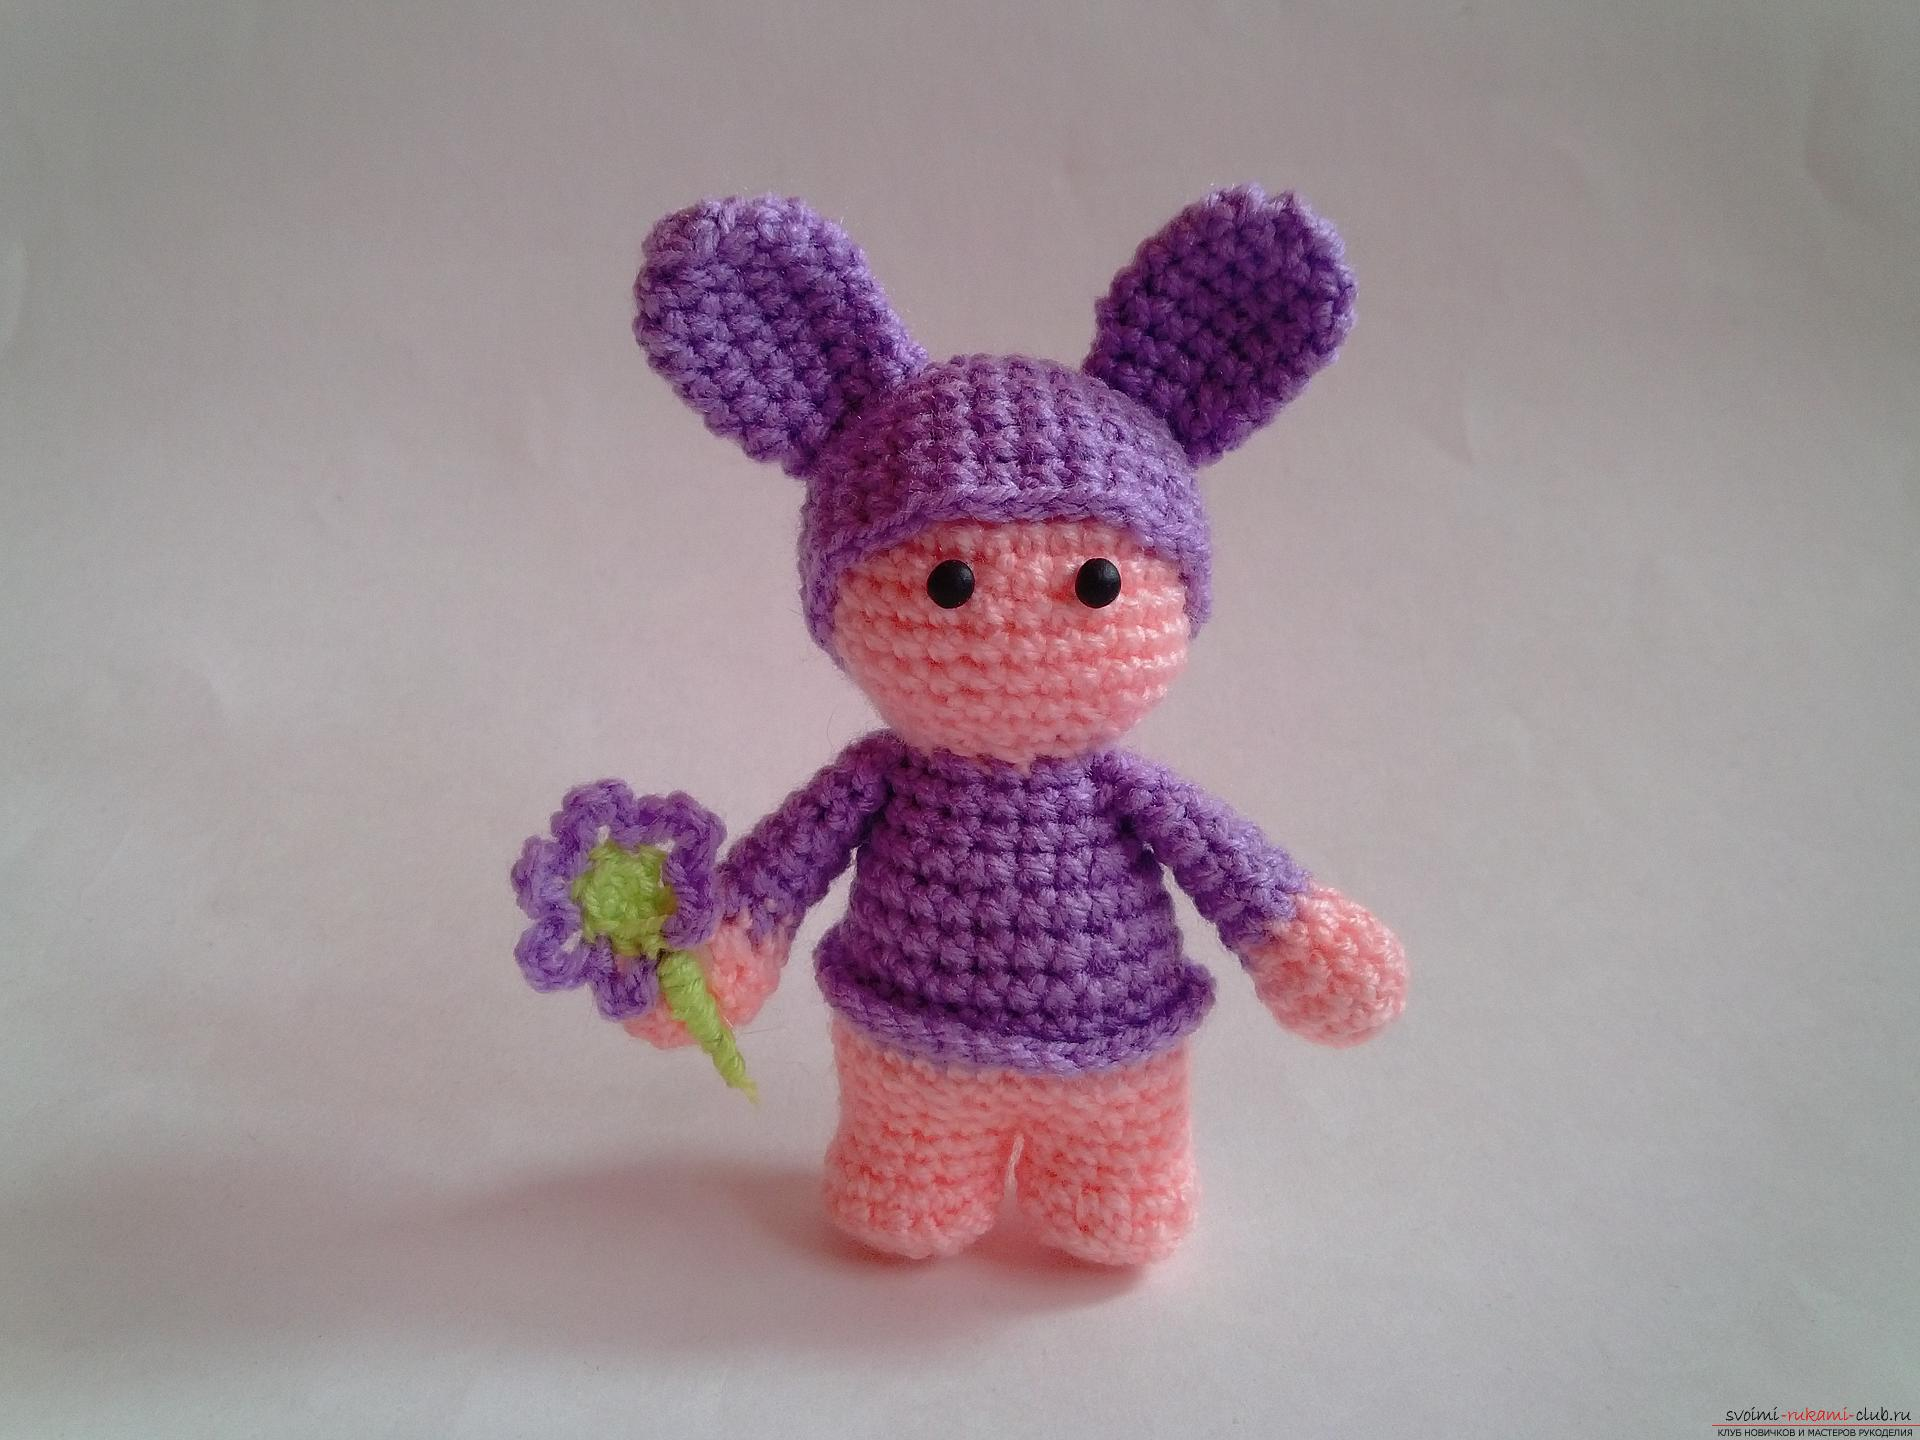 How to tie a toy crochet